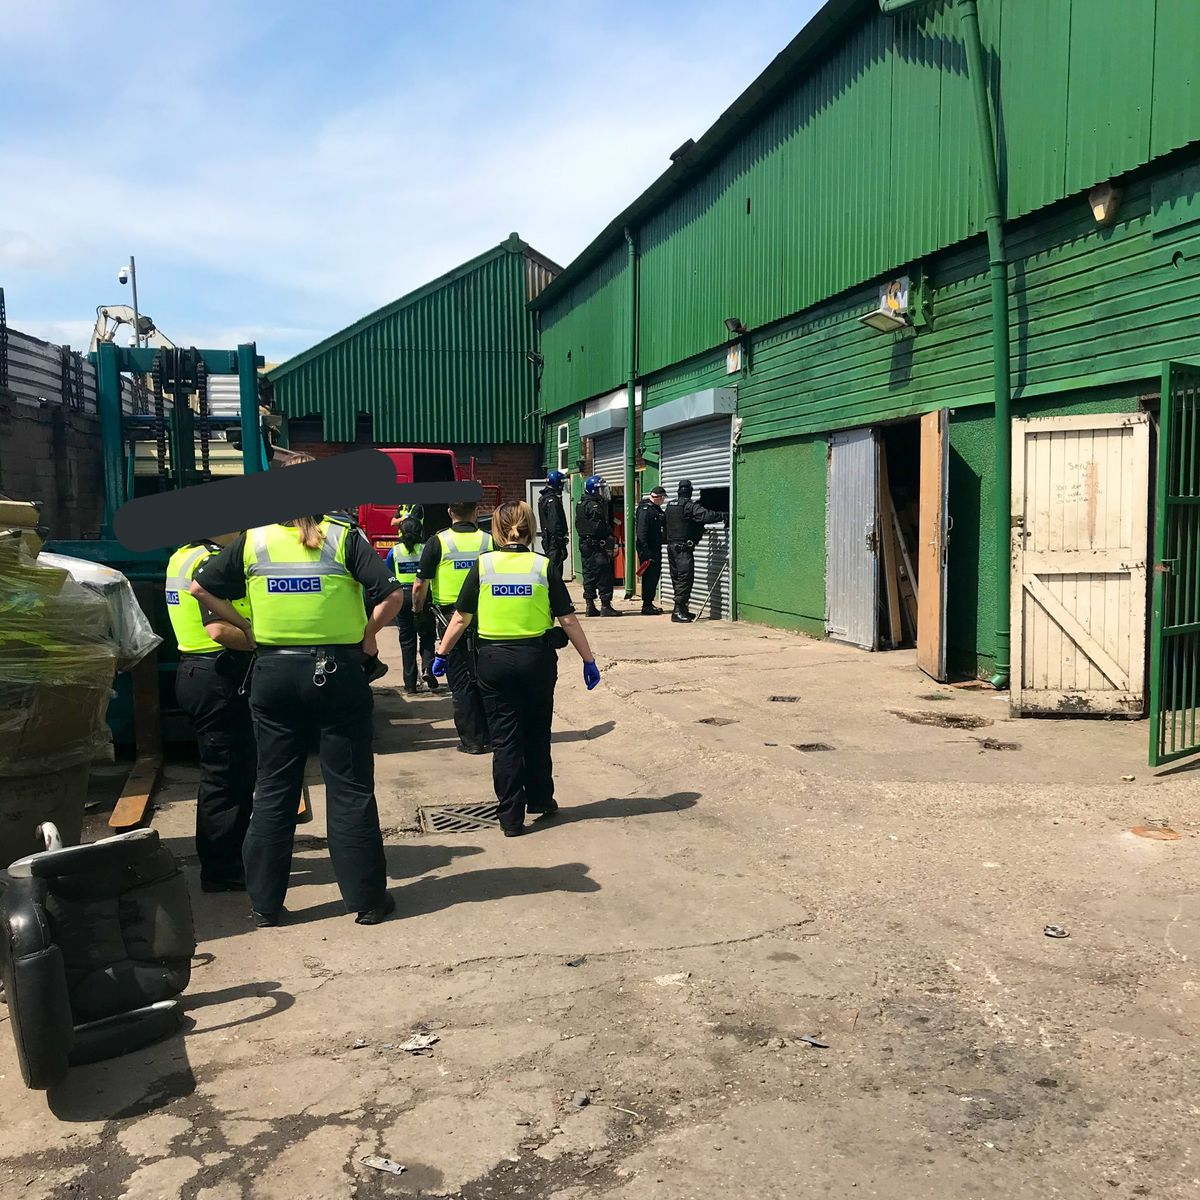 Police seized a large quantity of cannabis, alongside a number of offensive weapons, three air rifles, a stolen van and suspected stolen car parts